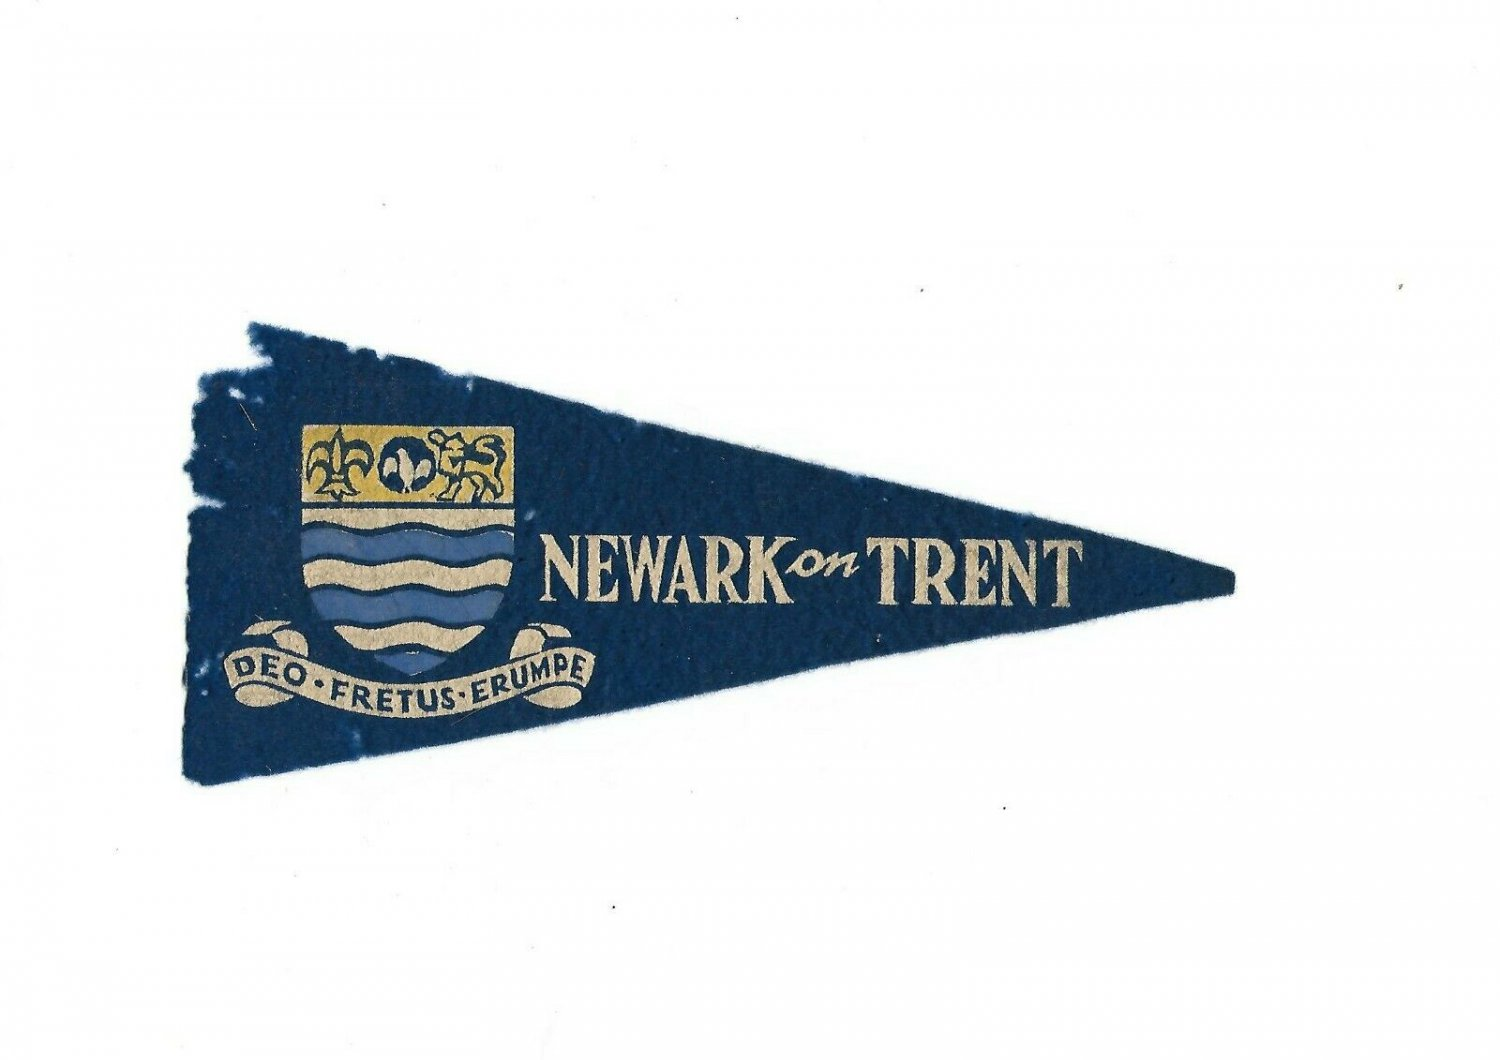 BOY SCOUTS NEWARK on Trent England Flag Pennant Original 1957